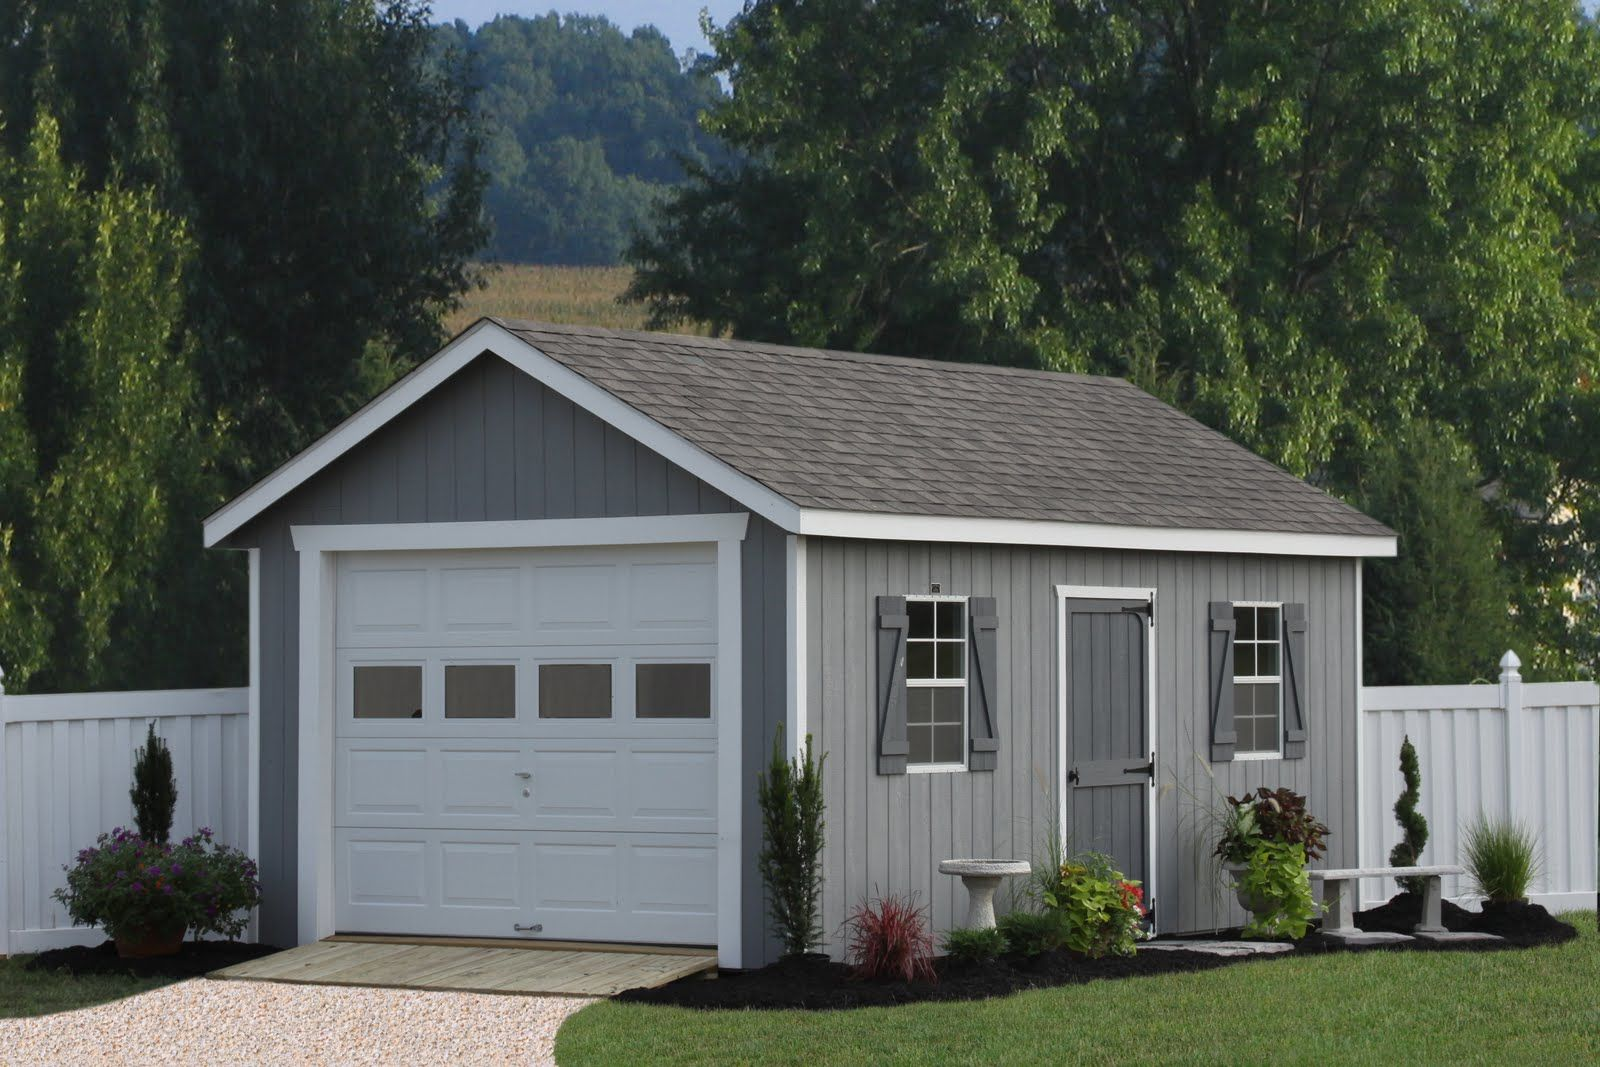 Add on garage plans 12x20 classic one car garage for 1 car garage cost